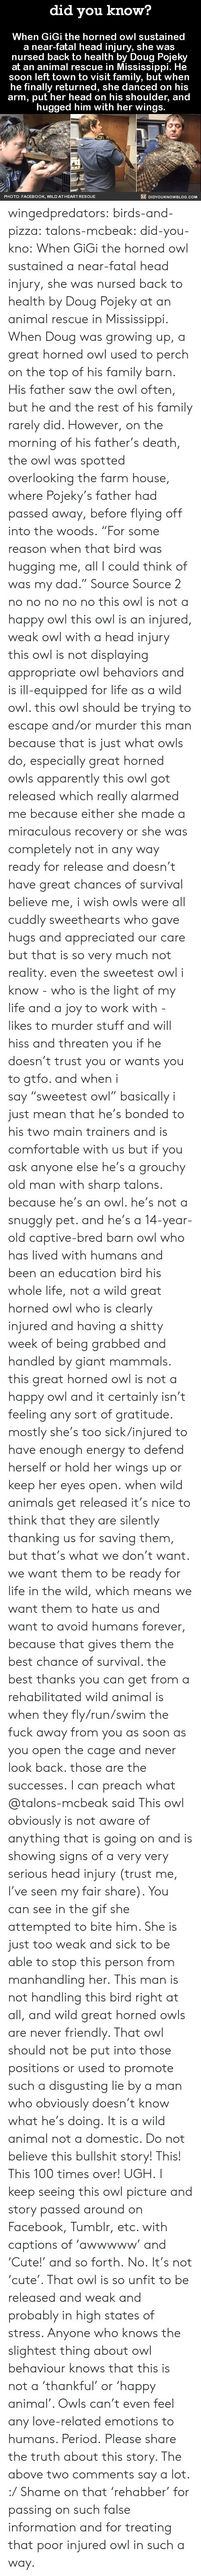 """Animals, Apparently, and Comfortable: did you know?  When GiGi the horned owl sustained  a near-fatal head injury, she was  nursed back to health by Doug Pojeky  at an animal rescue in Mississippi. He  soon left town to visit family, but when  he finally returned, she danced on his  arm, put her head on his shoulder, and  hugged him with her wings.  PHOTO: FACEBOOK, WILD AT HEART RES CUE  DIDYOUKNOWBLOG.COM wingedpredators: birds-and-pizza:  talons-mcbeak:  did-you-kno:  When GiGi the horned owl sustained  a near-fatal head injury, she was  nursed back to health by Doug Pojeky  at an animal rescue in Mississippi. When Doug was growing up, a great horned owl used to perch on the top of his family barn. His father saw the owl often, but he and the rest of his family rarely did. However, on the morning of his father's death, the owl was spotted overlooking the farm house, where Pojeky's father had passed away, before flying off into the woods. """"For some reason when that bird was hugging me, all I could think of was my dad."""" Source Source 2  no no no no no this owl is not a happy owl this owl is an injured, weak owl with a head injury this owl is not displaying appropriate owl behaviors and is ill-equipped for life as a wild owl. this owl should be trying to escape and/or murder this man because that is just what owls do, especially great horned owls apparently this owl got released which really alarmed me because either she made a miraculous recovery or she was completely not in any way ready for release and doesn't have great chances of survival believe me, i wish owls were all cuddly sweethearts who gave hugs and appreciated our care but that is so very much not reality. even the sweetest owl i know - who is the light of my life and a joy to work with - likes to murder stuff and will hiss and threaten you if he doesn't trust you or wants you to gtfo. and when i say""""sweetest owl"""" basically i just mean that he's bonded to his two main trainers and is comfortable with u"""